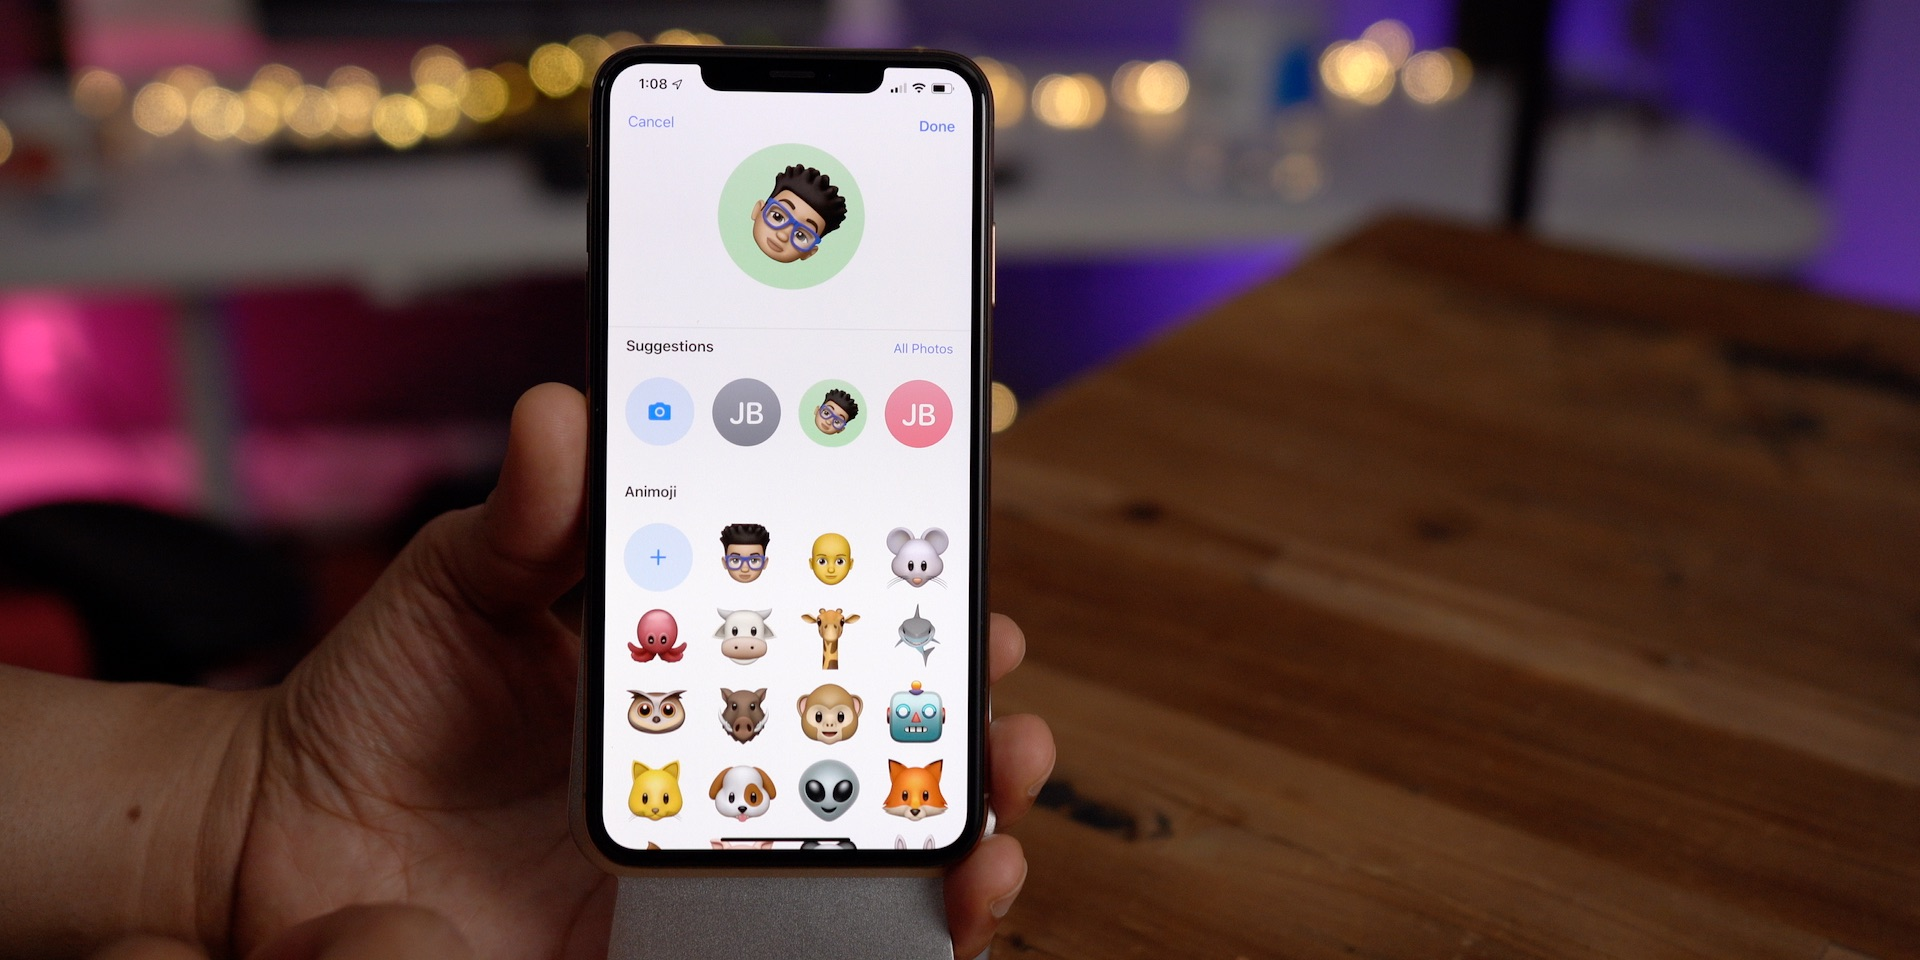 iOS 13 changes Contacts